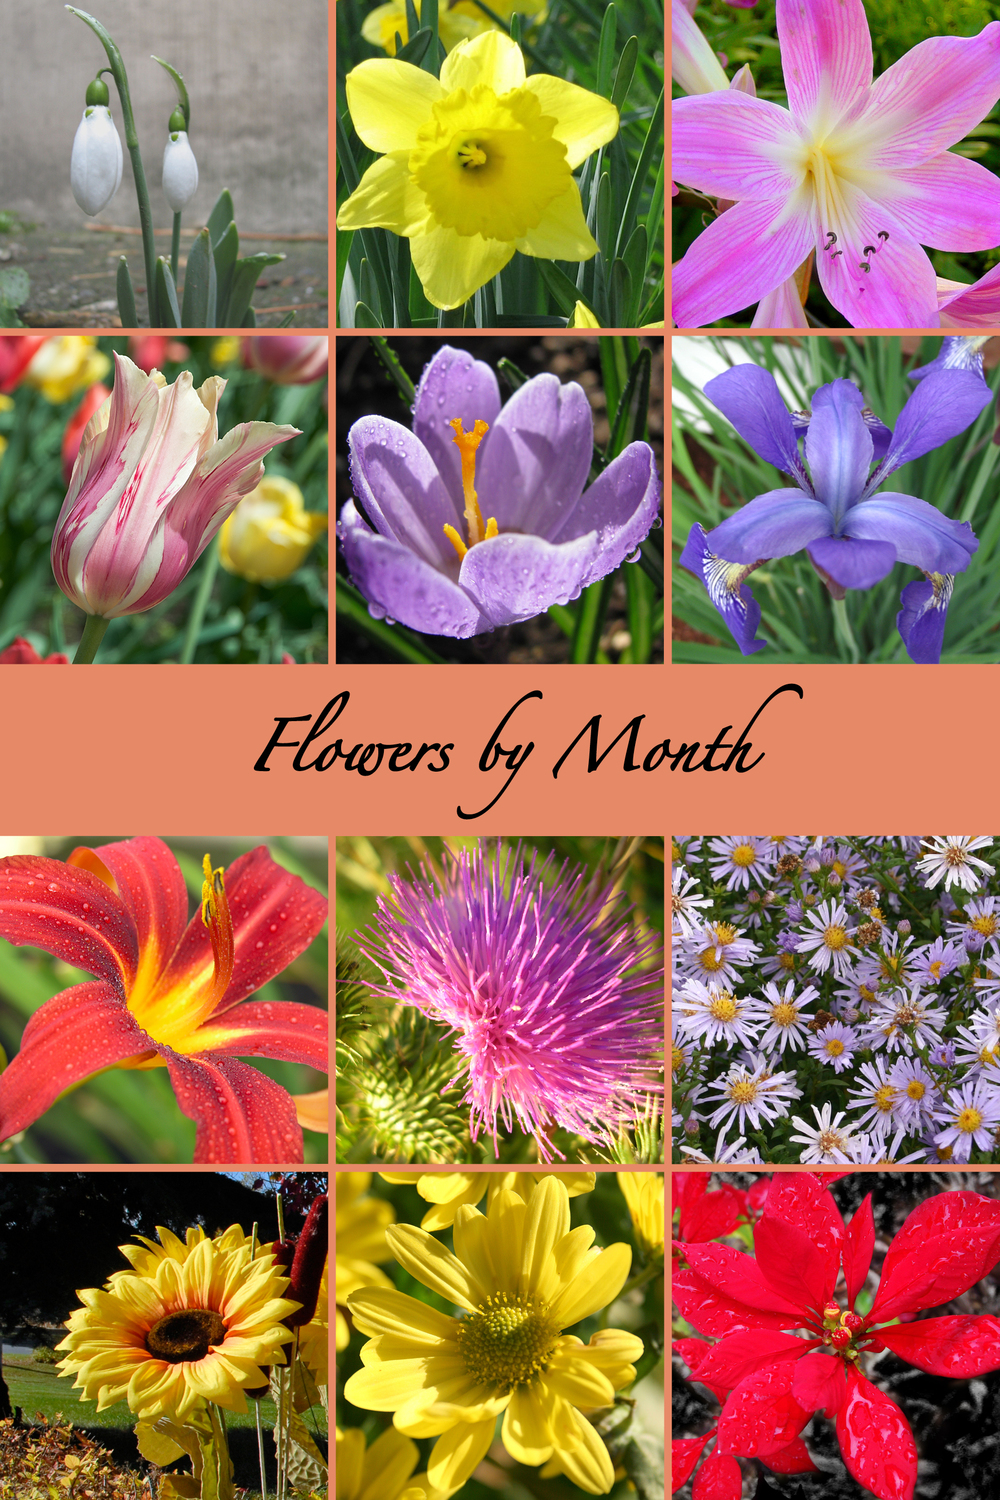 Book Cover Design With Flowers ~ Featured cover flowers by month — book design